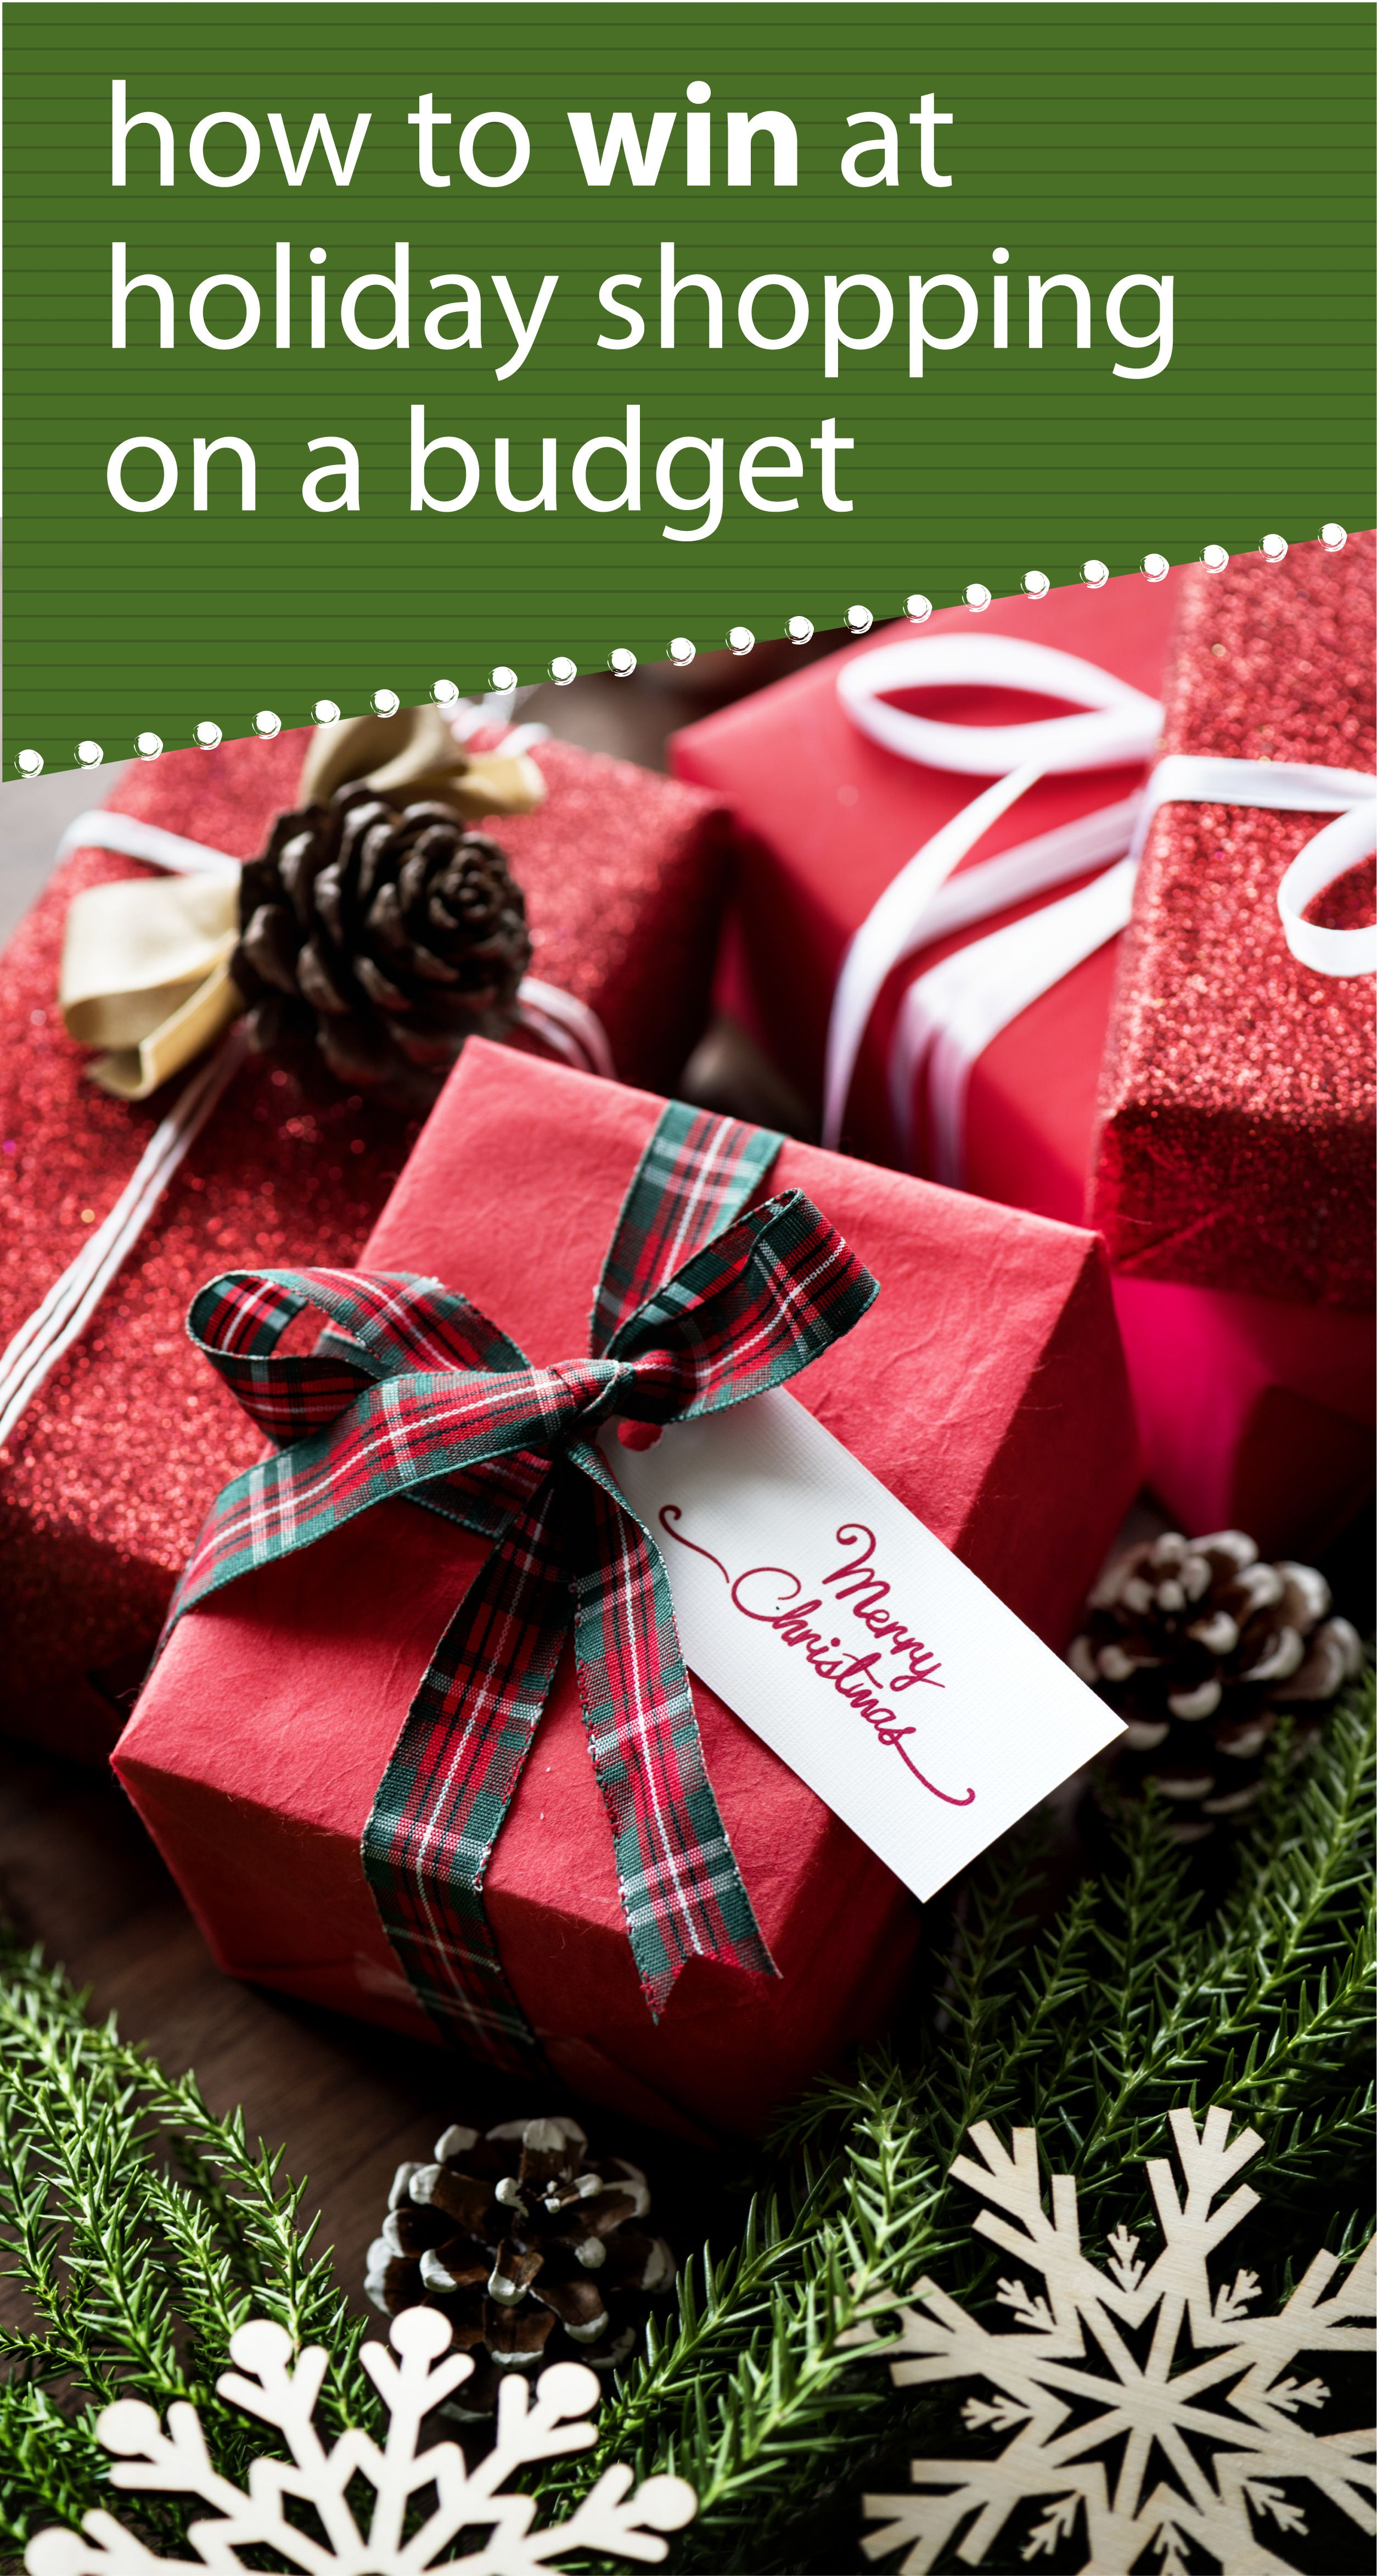 Win at Holiday Shopping with Honey! Honey automatically finds and ...